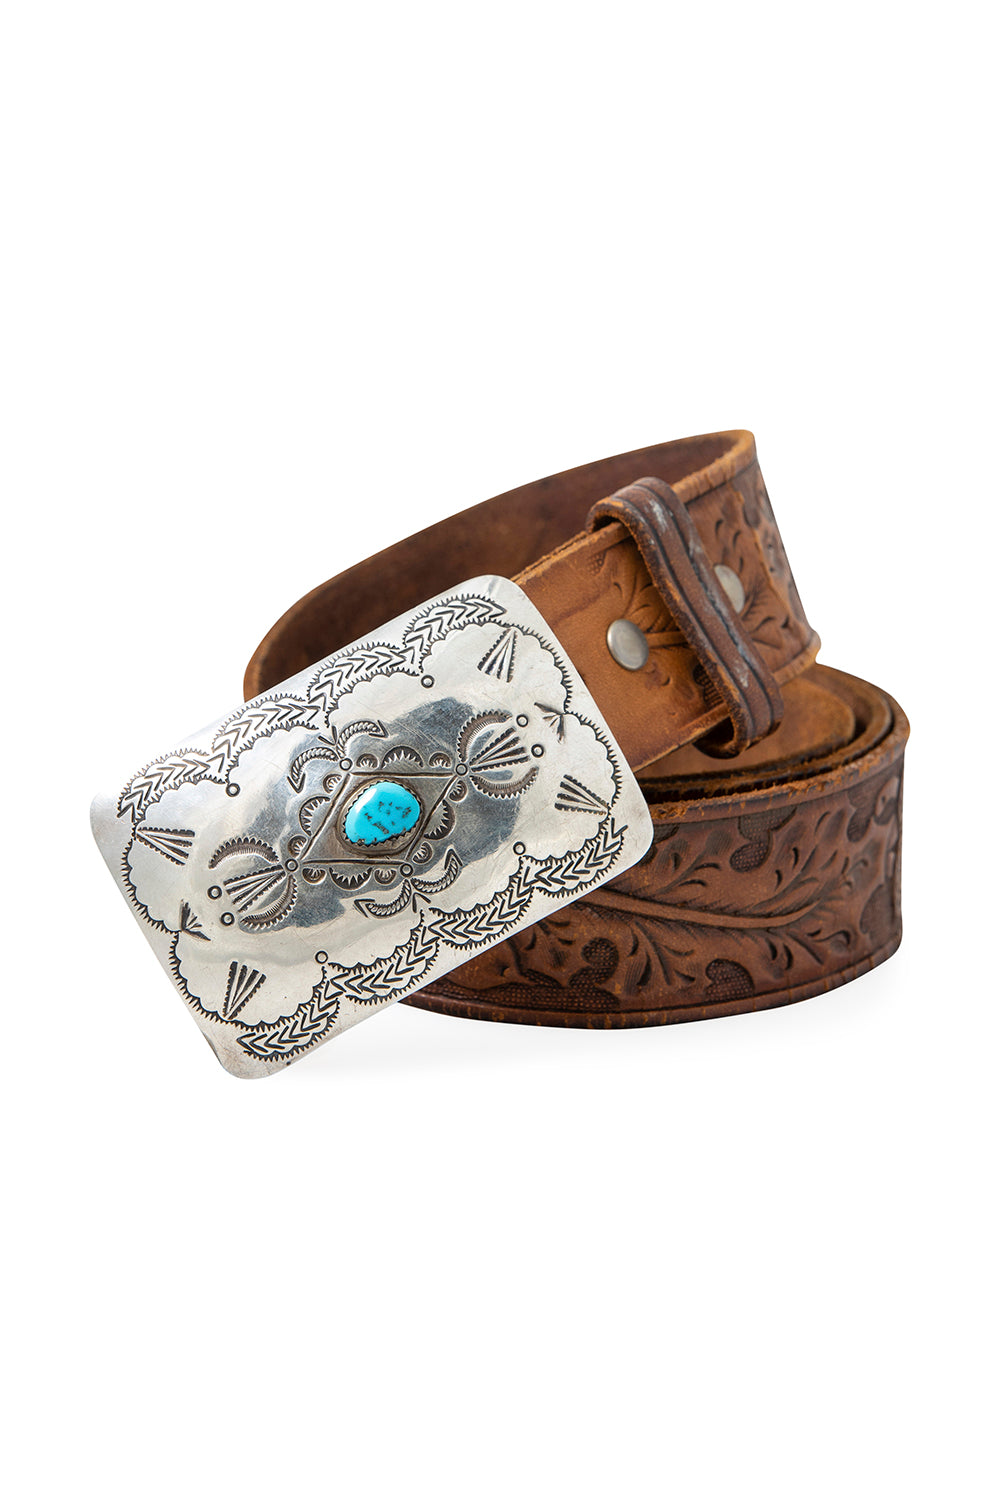 Belt, Concho Buckle, Turquoise, Tooled Leather Strap, Hallmark, Vintage, 701